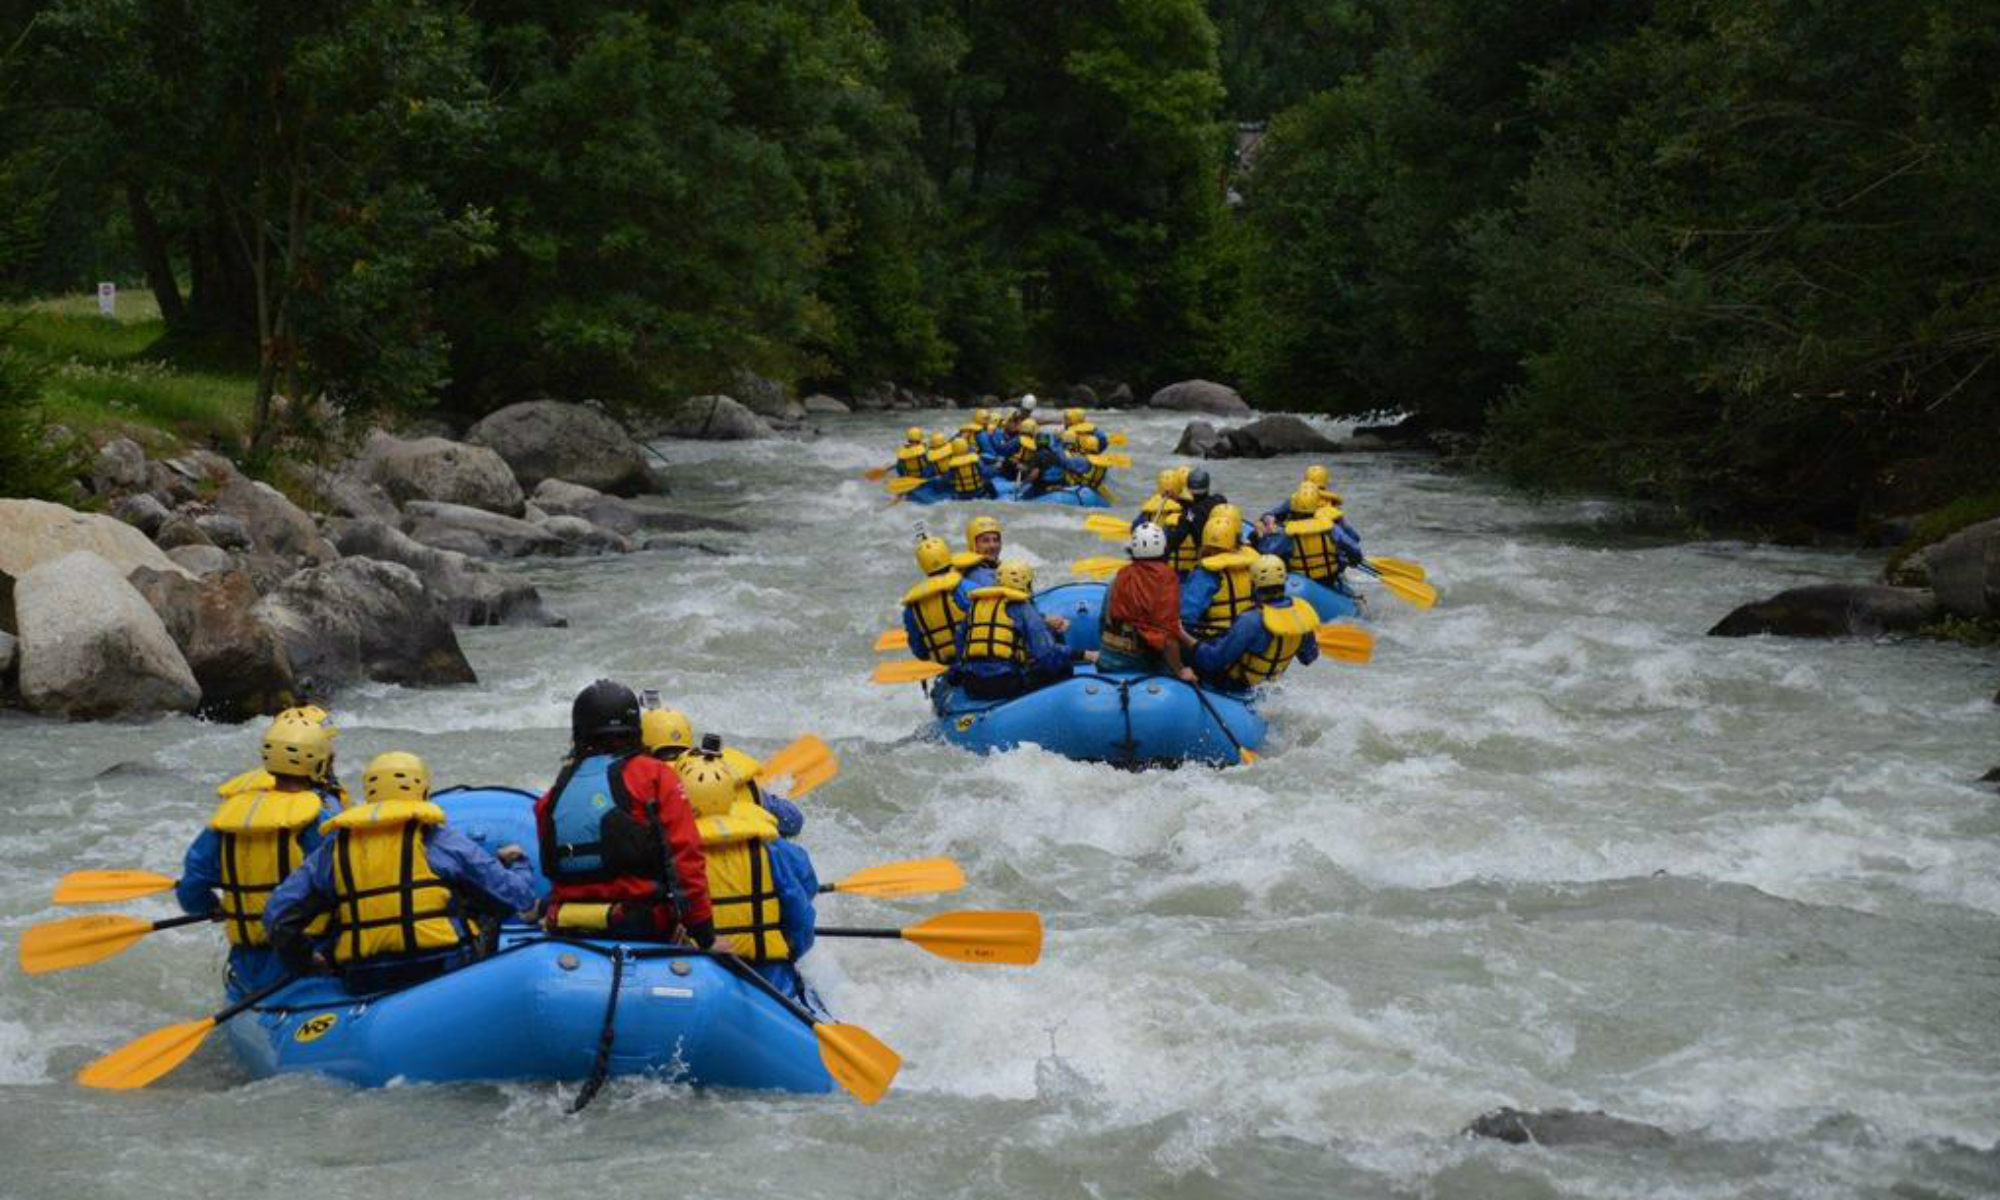 Several groups of people rafting on the Noce River in Val di Sole.